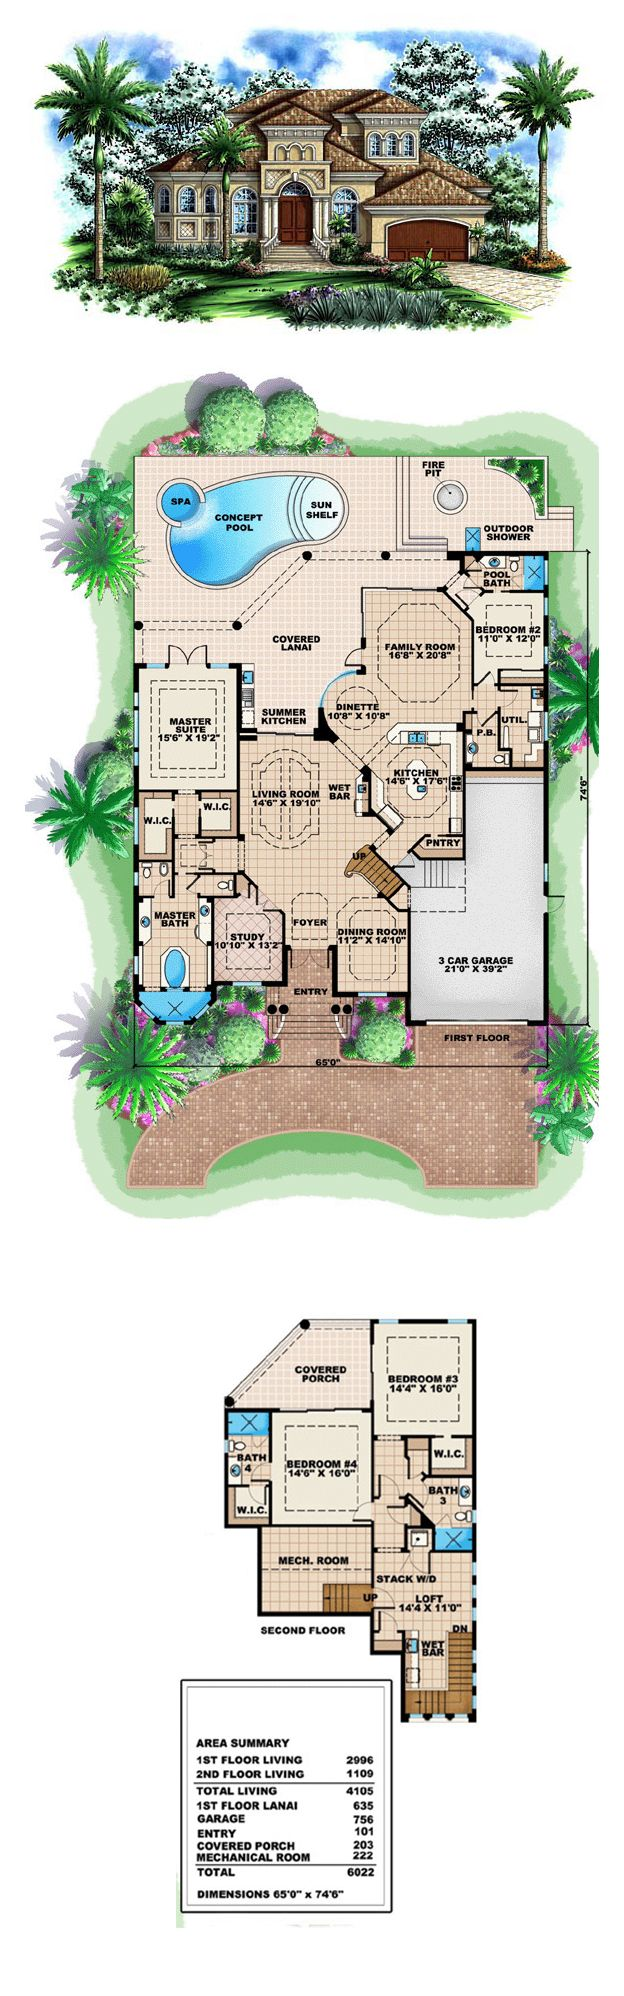 Home plans with pool home designs with pool from homeplans com - House Plan 60437 Total Living Area 4105 Sq Ft 4 Bedrooms 4 5